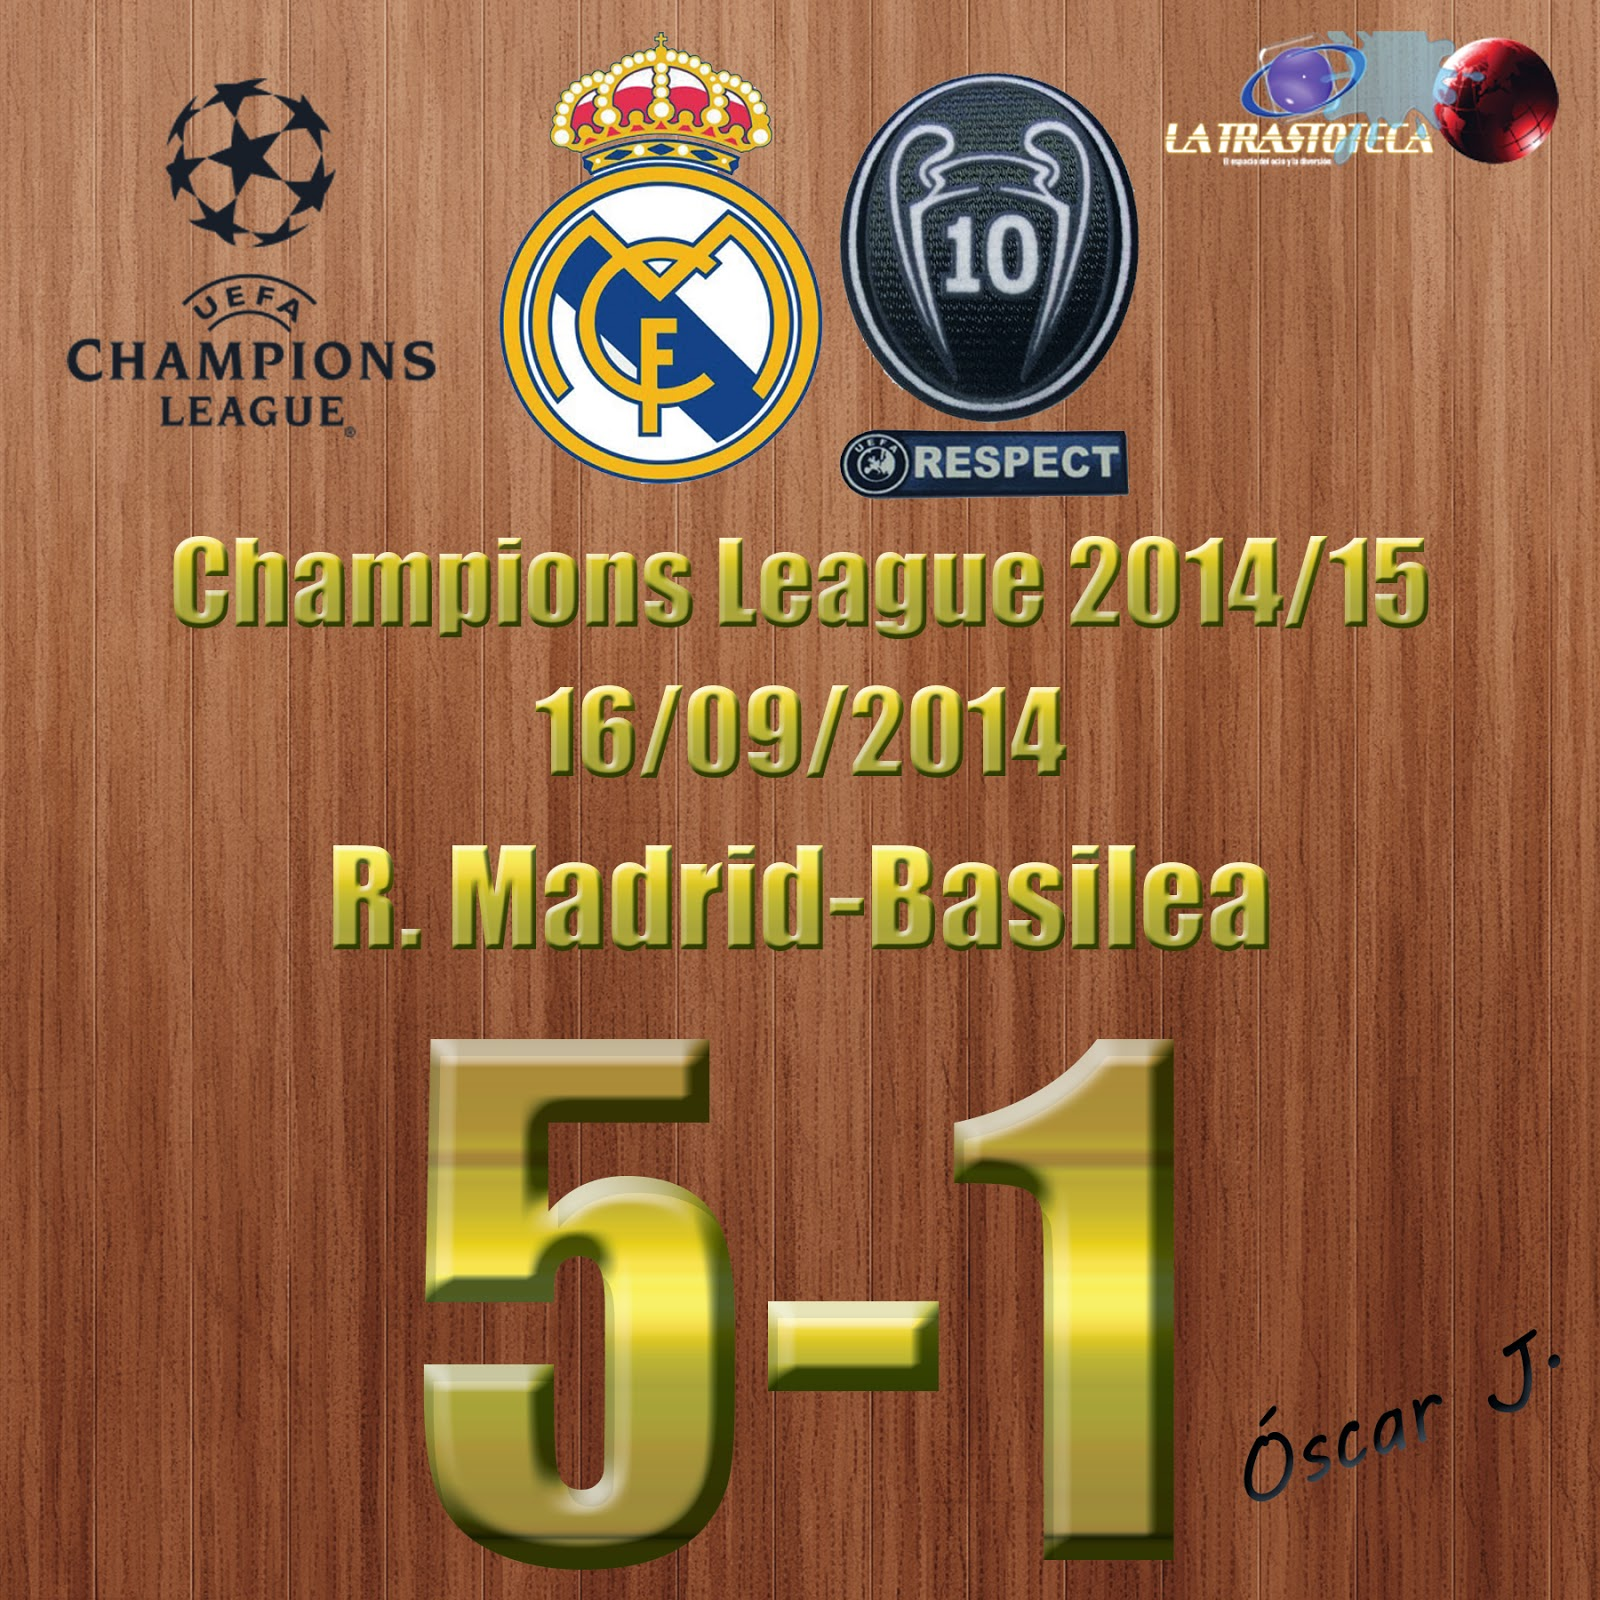 Real Madrid 5-1 Basilea - Champions League Jornada 1 (16/09/2014)